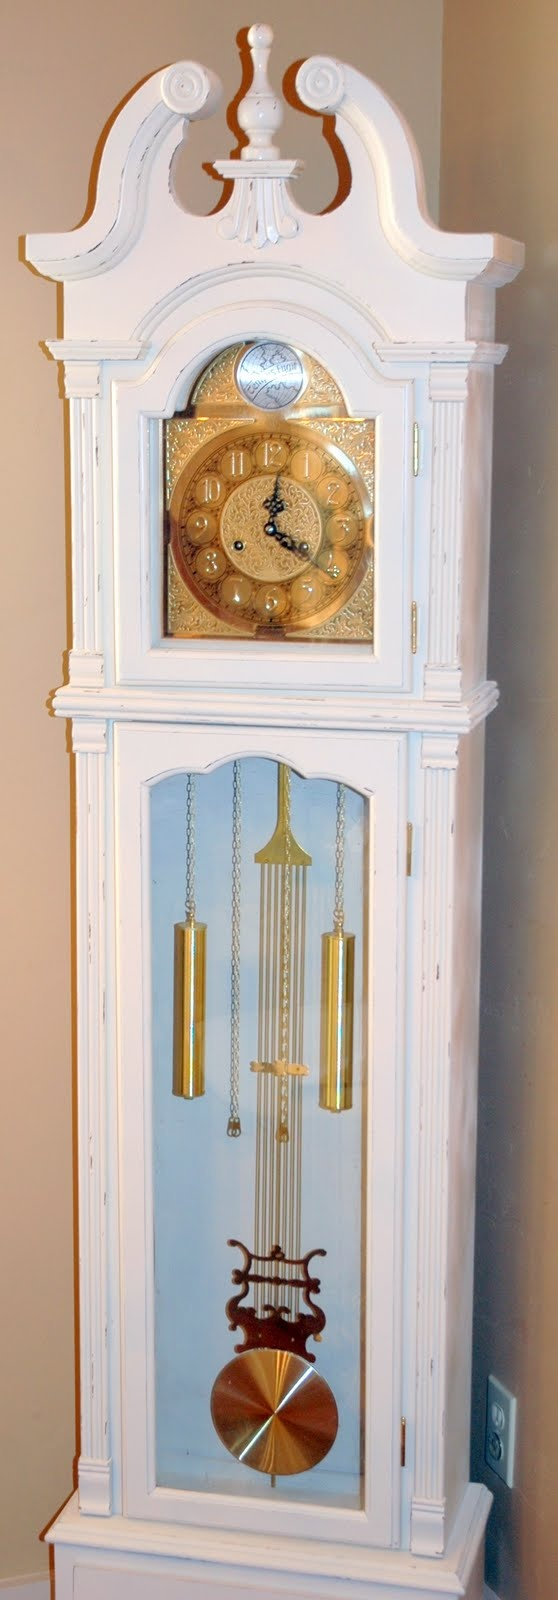 Painted Grandfather Clock Projects Pinterest